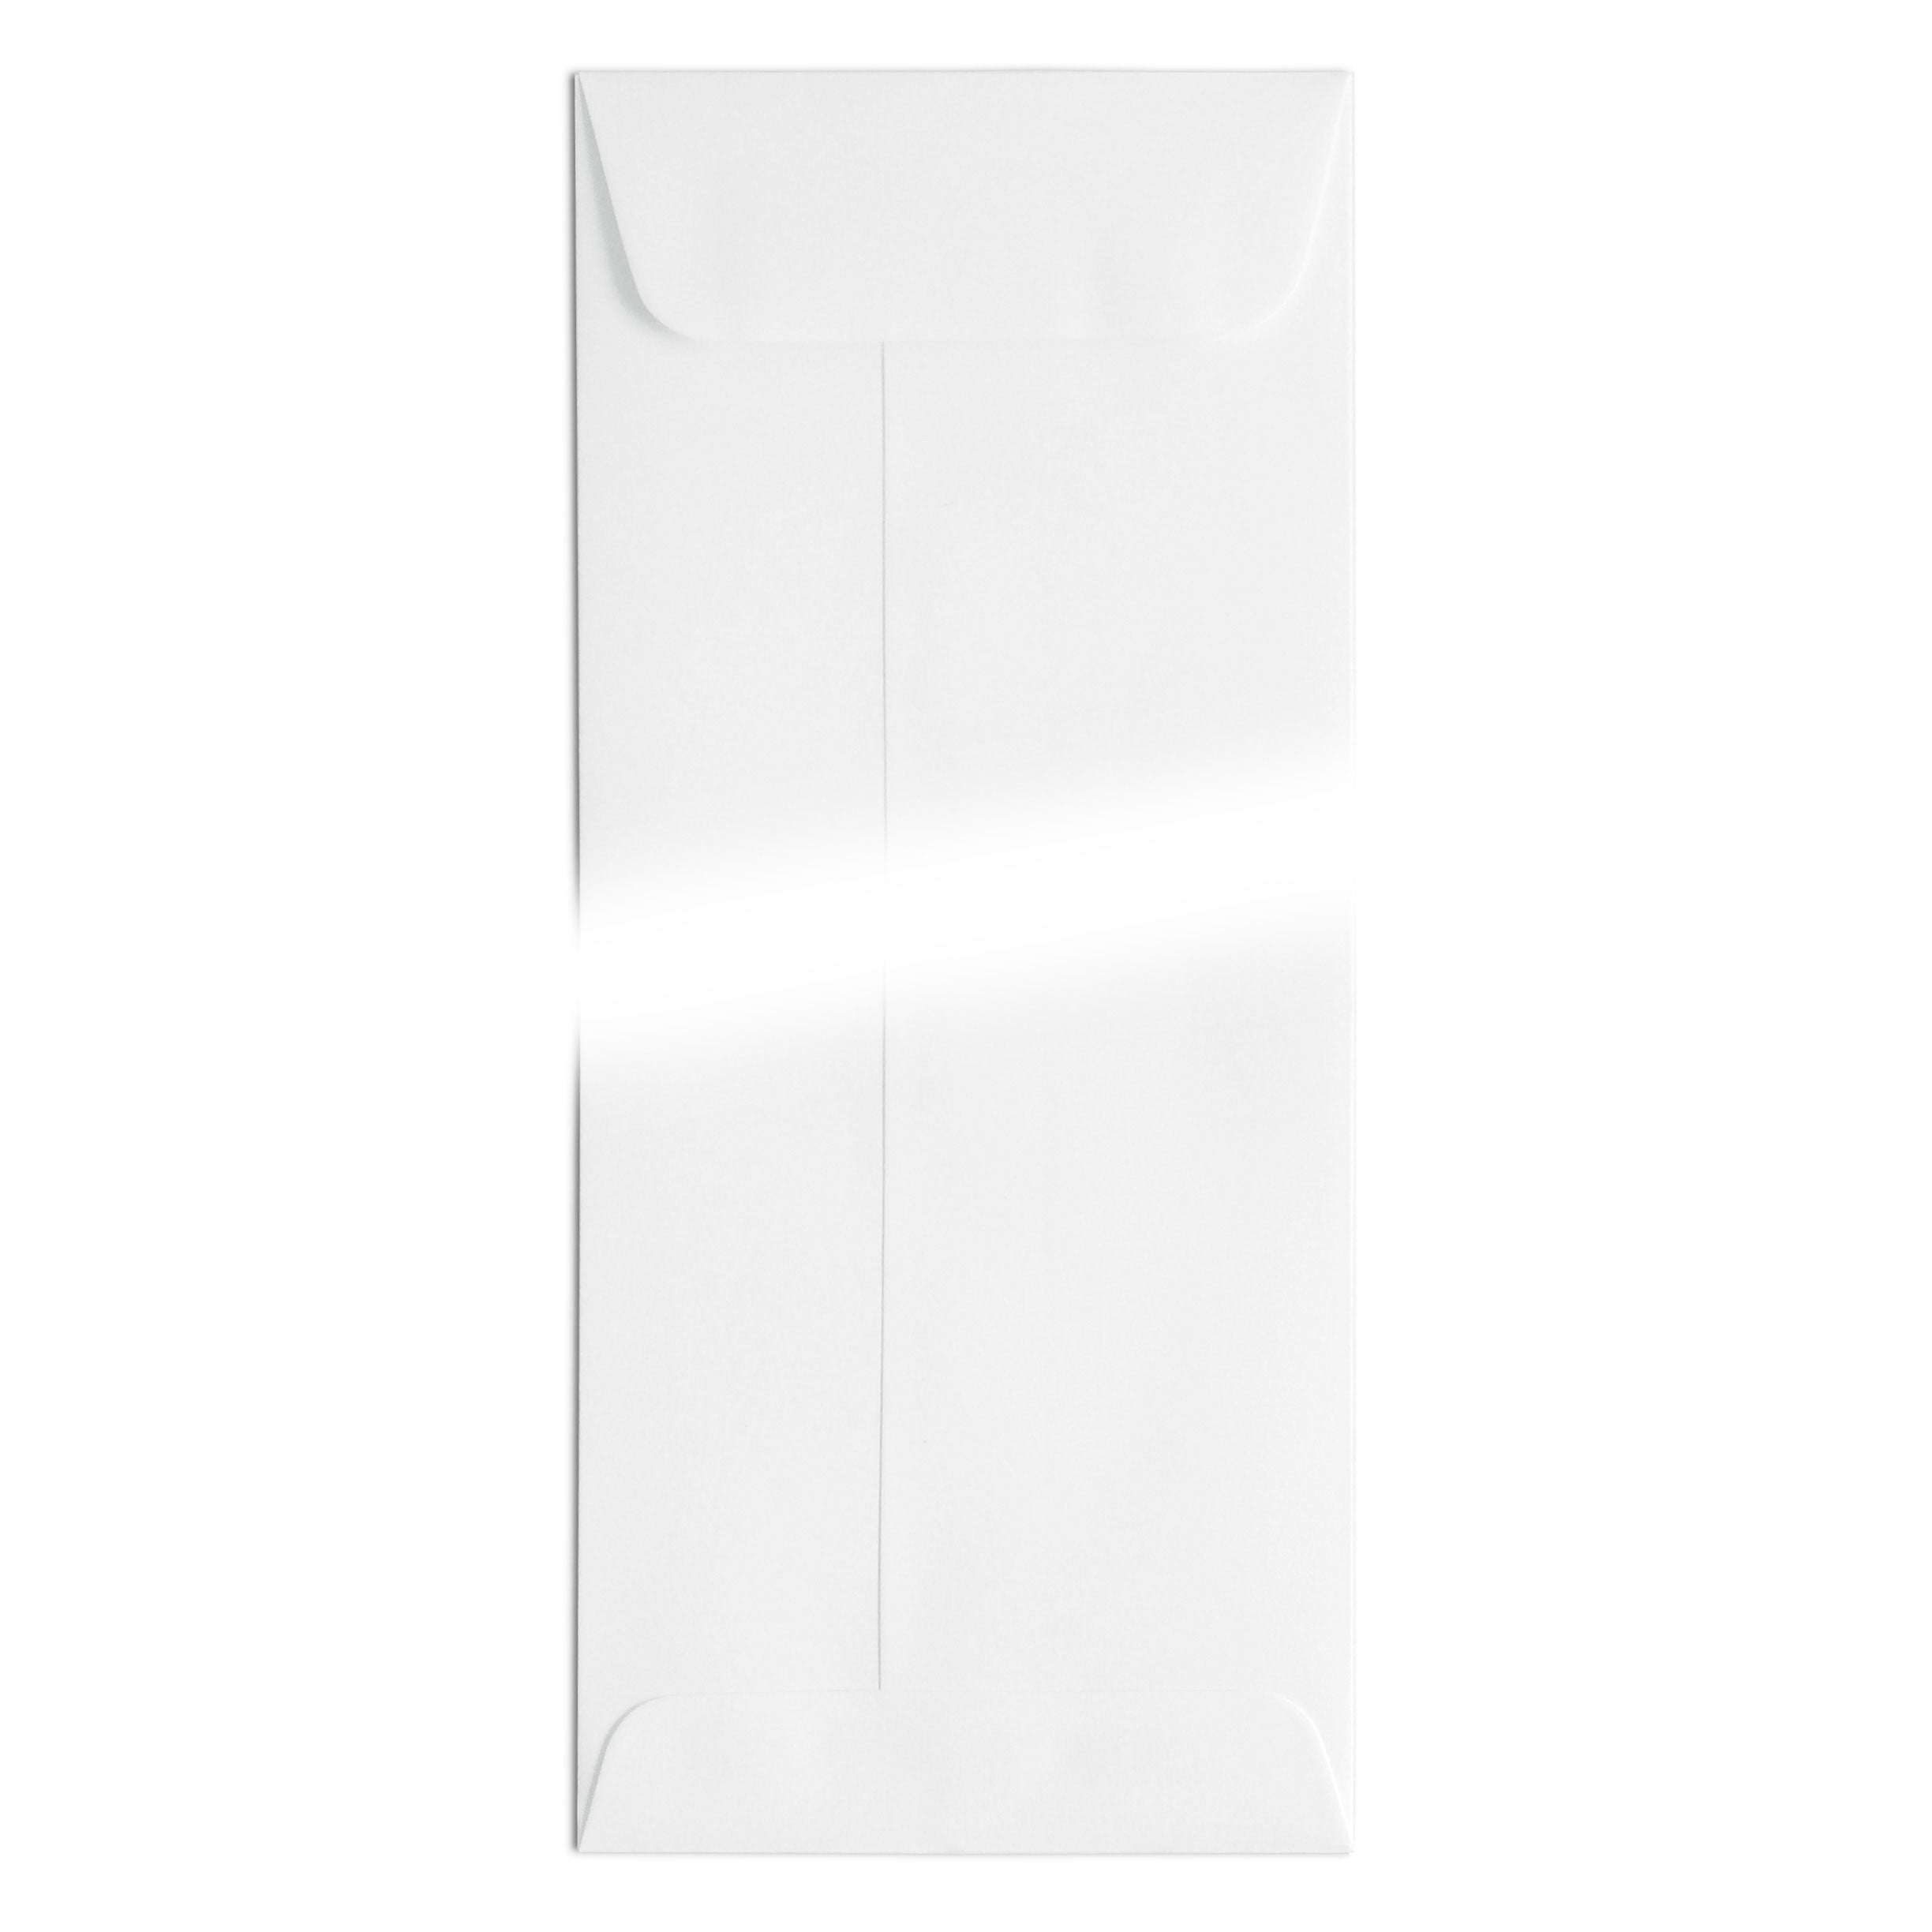 #10 Business Envelope White